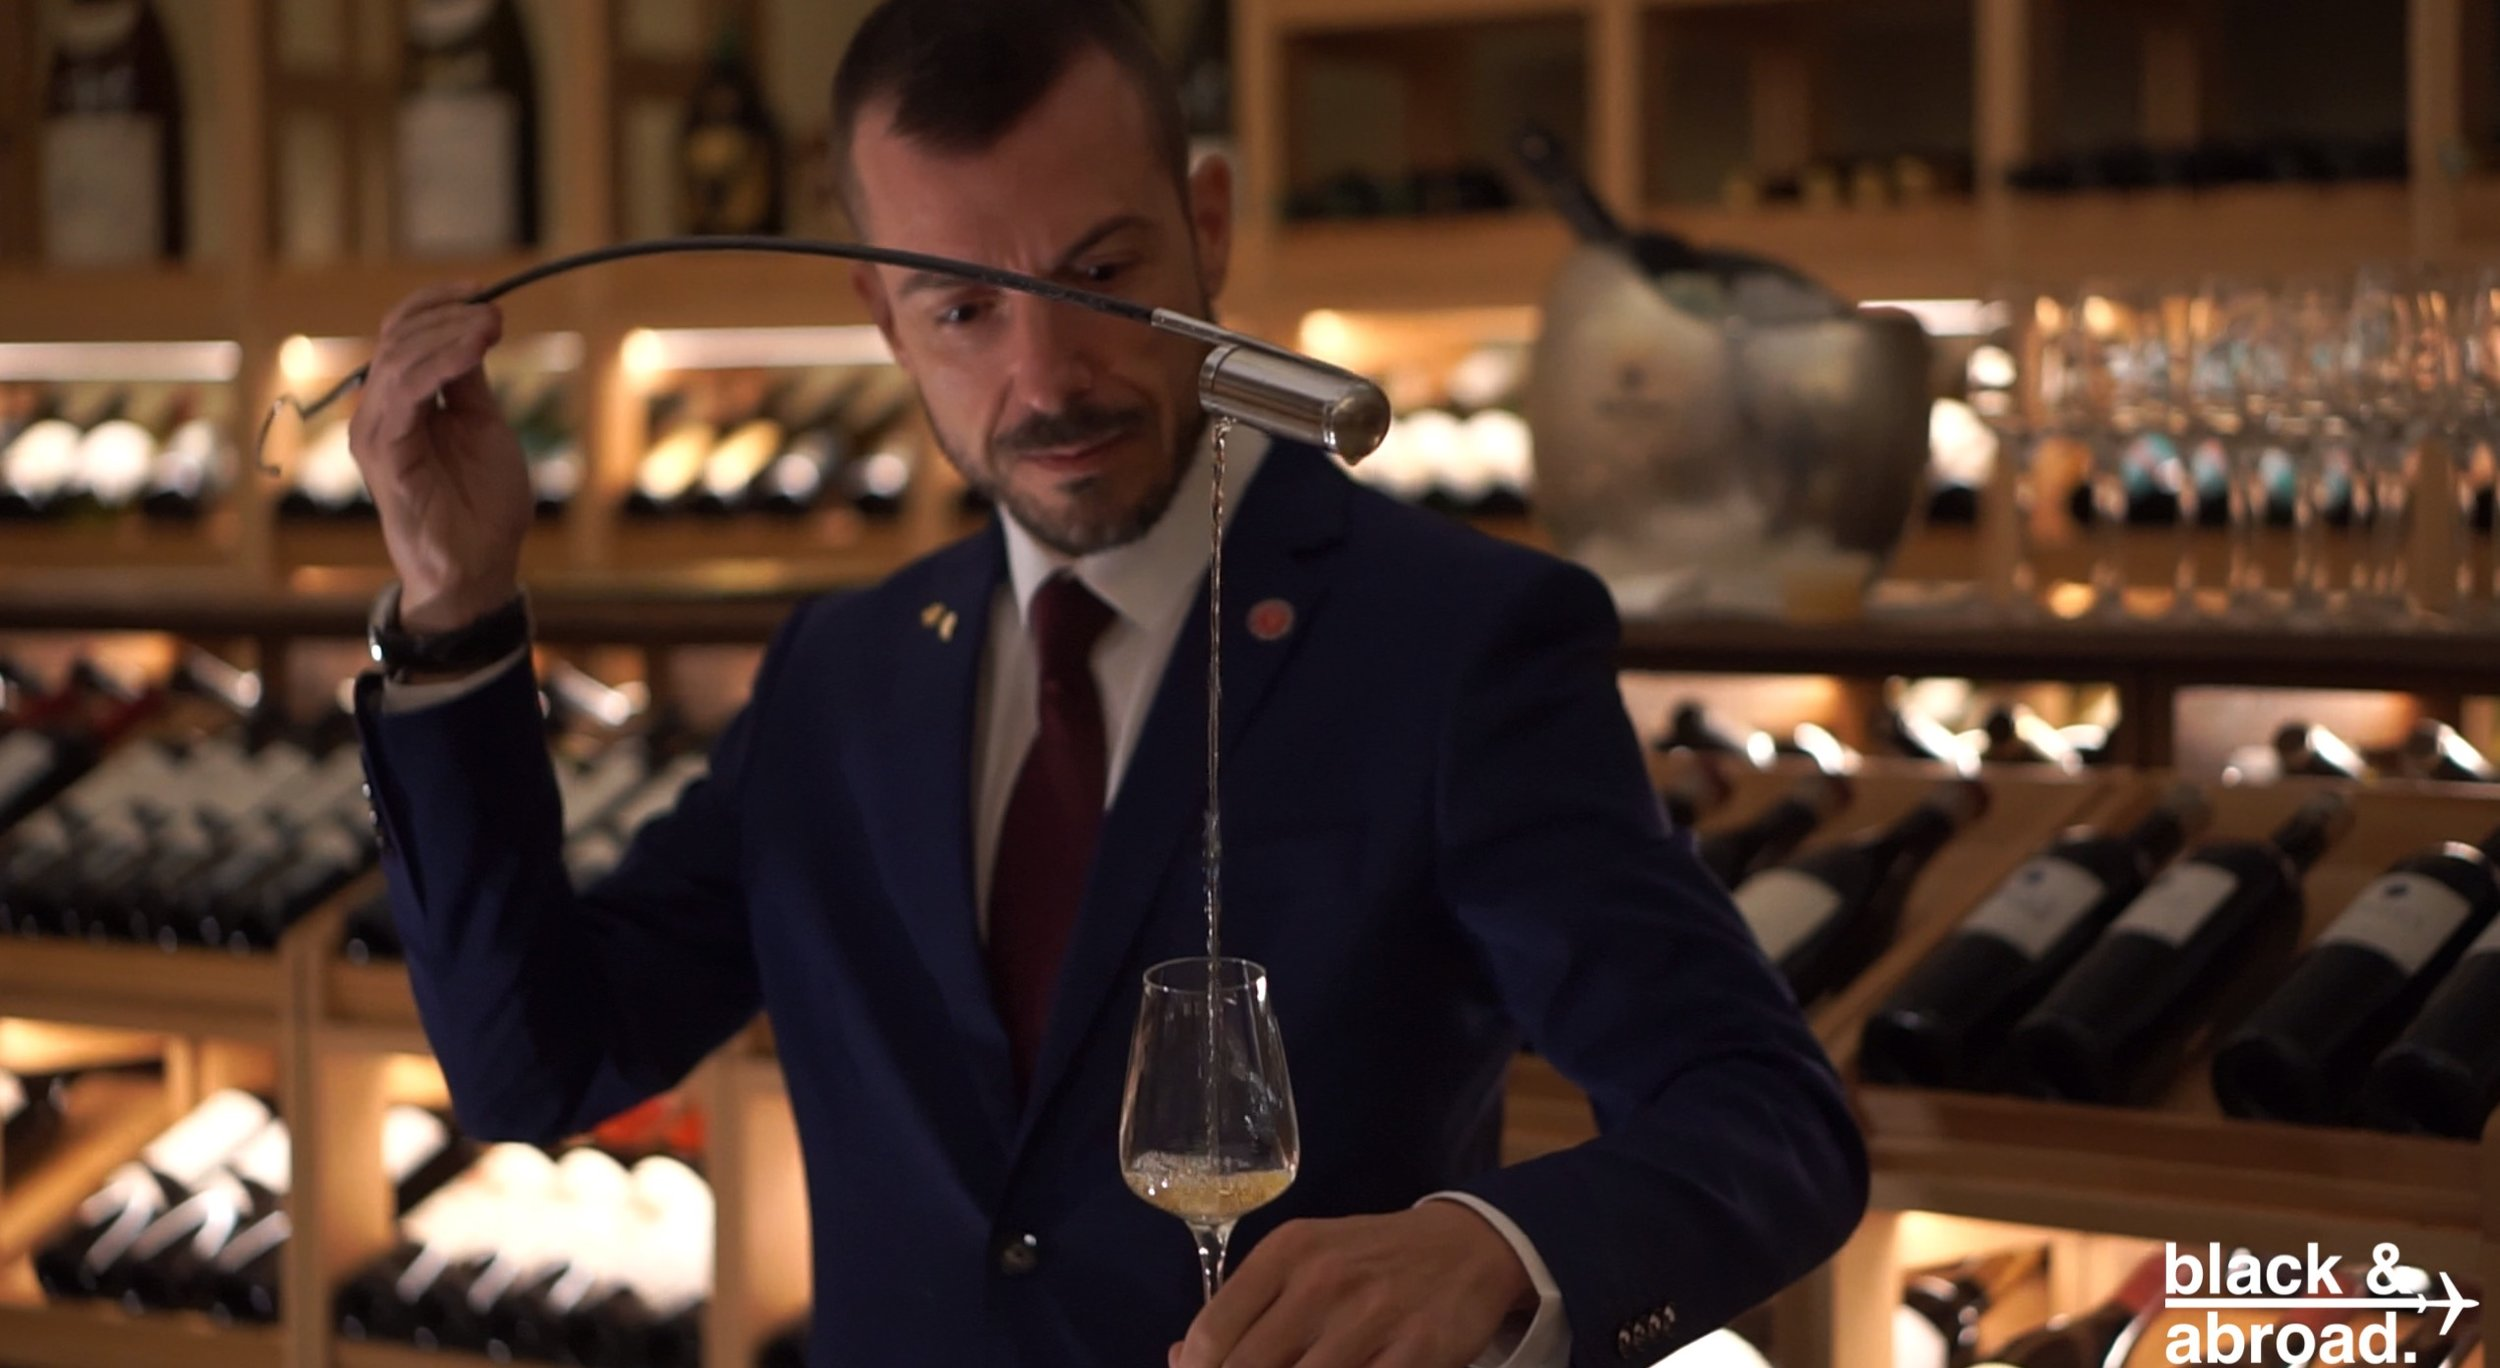 One of Coque's sommeliers aerating the wine pairing for starter #3.